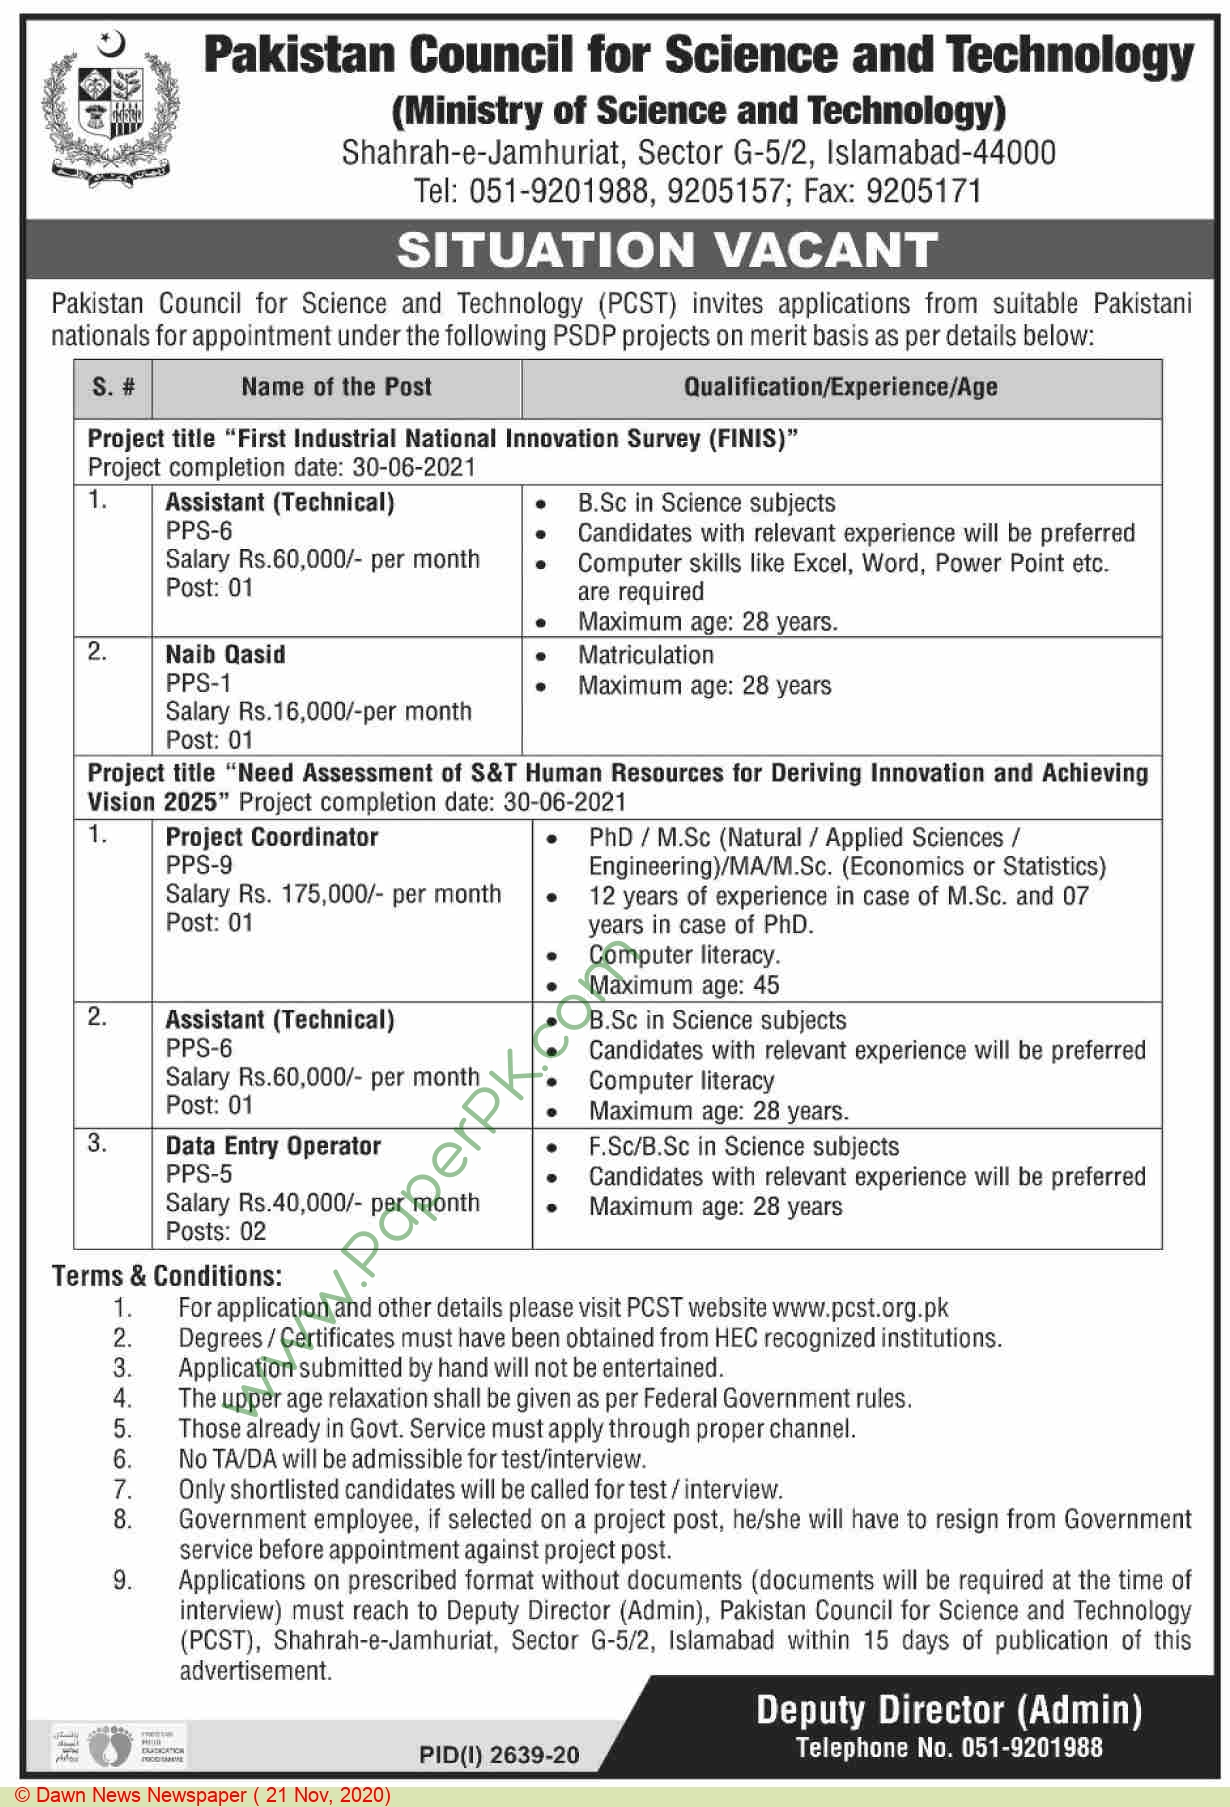 Pakistan Council For Science & Technology jobs newspaper ad for Data Entry Operator in Islamabad